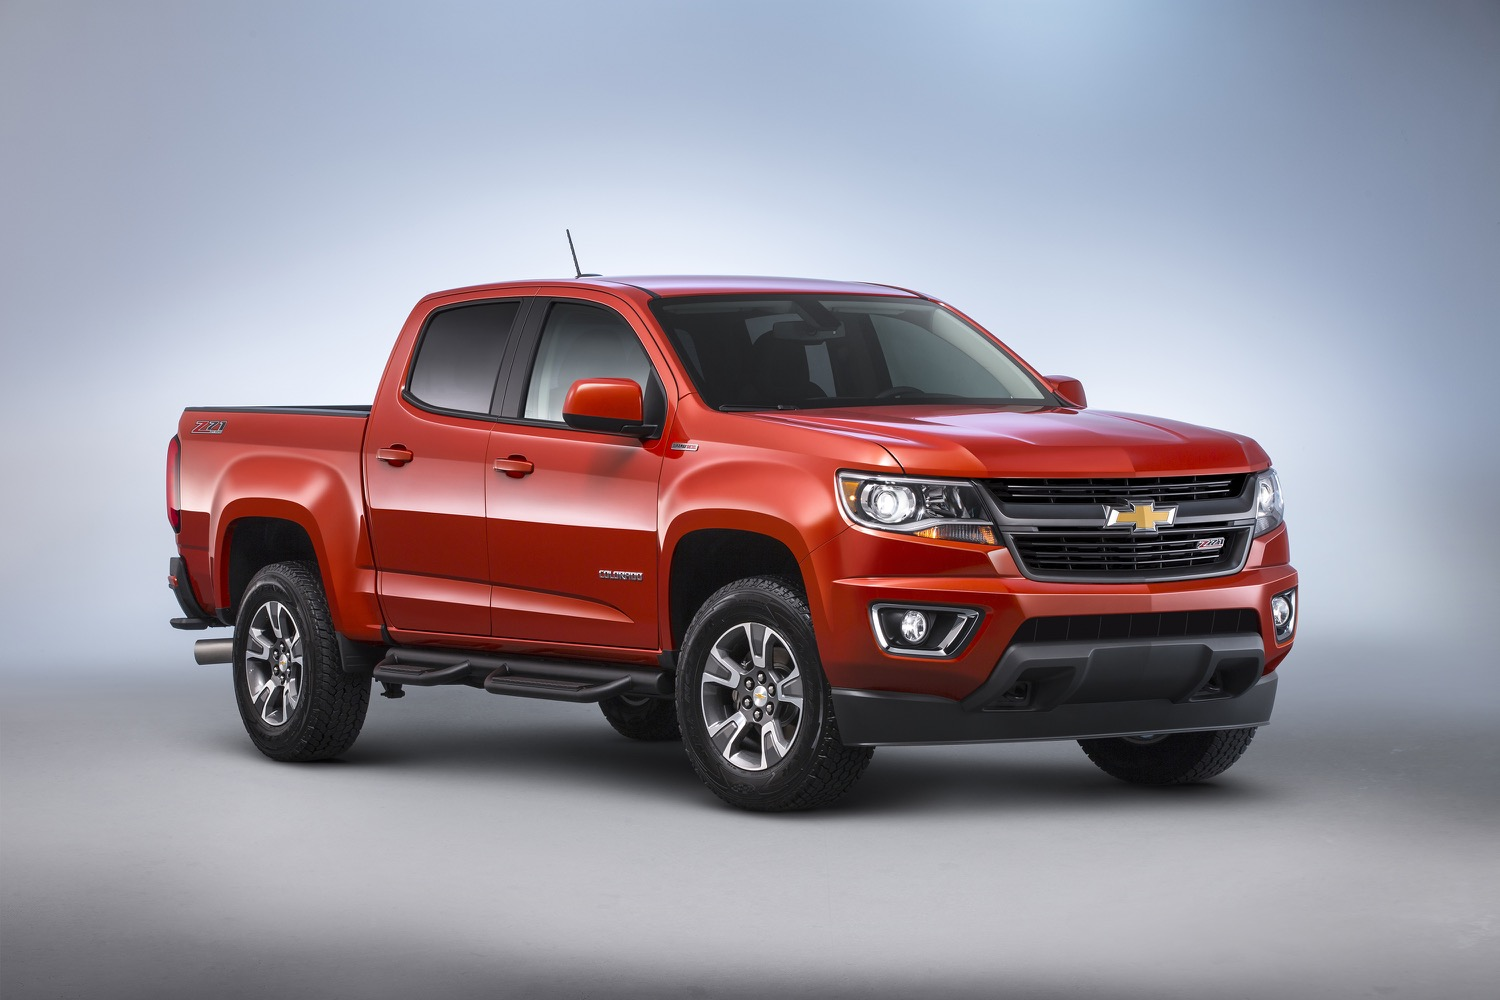 Delightful 2016 Chevy Colorado Diesel Pickup Priced At $31,700; Fuel Efficiency To  Come Later